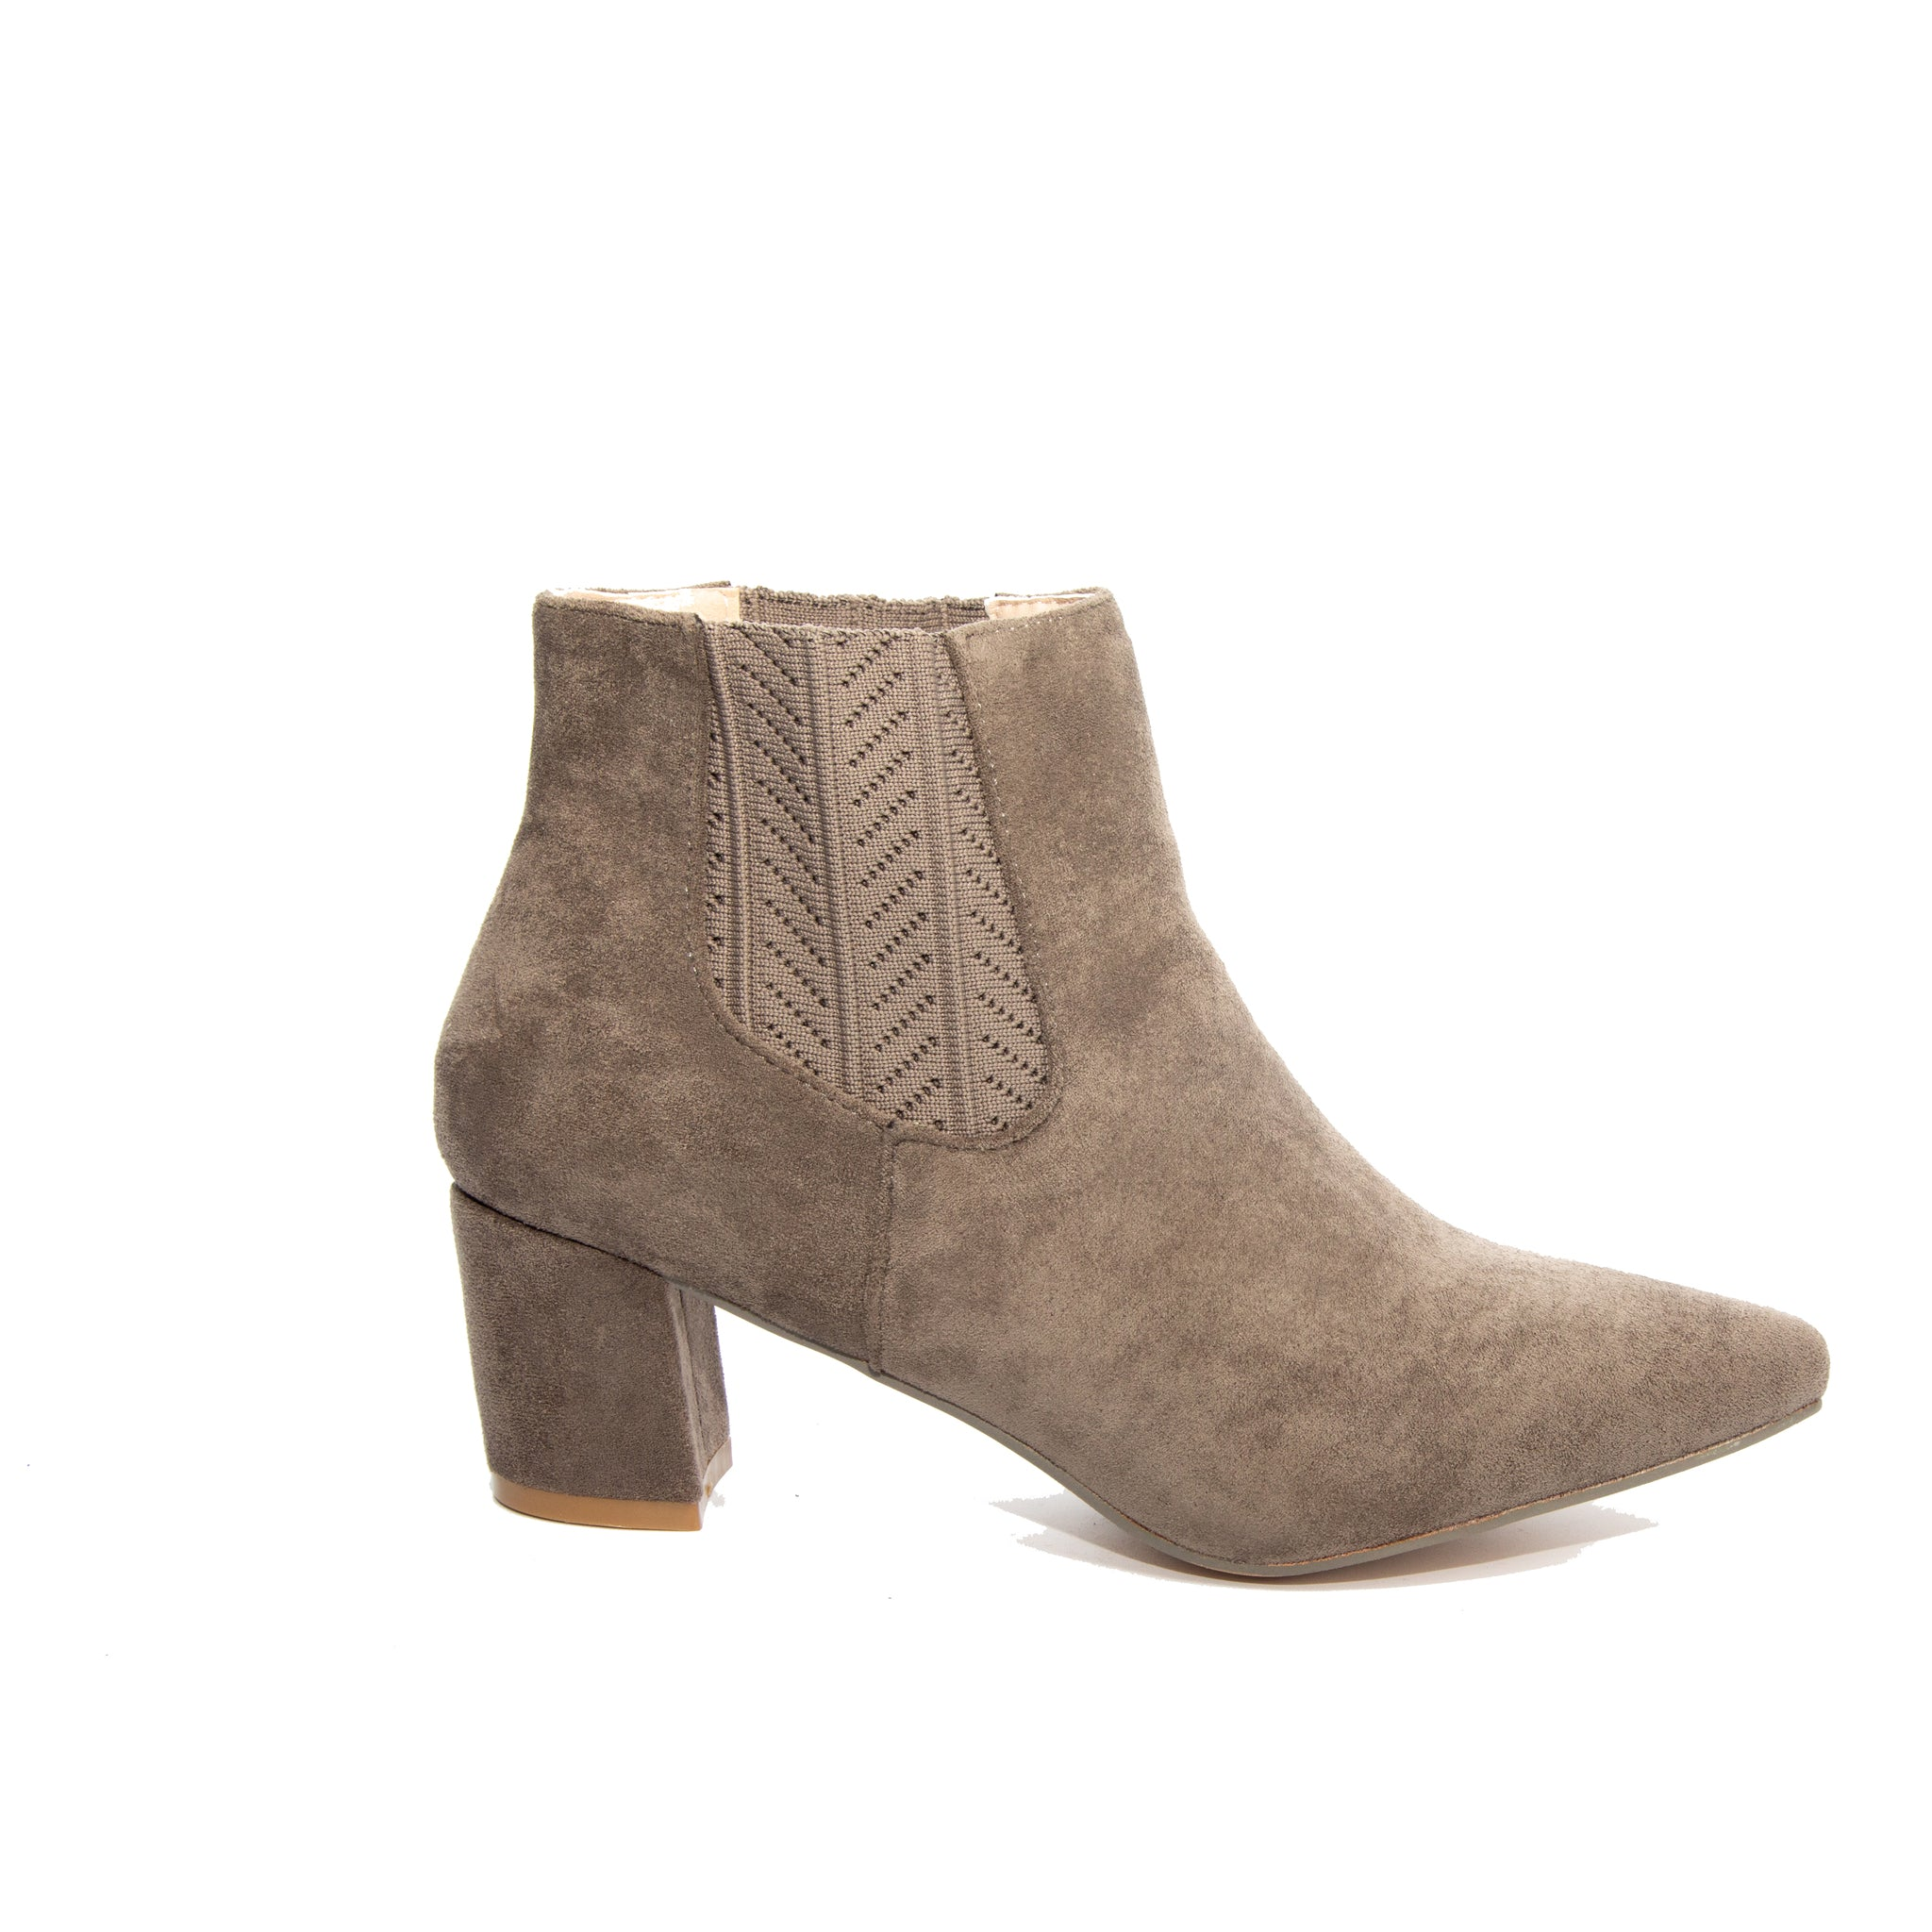 Chloe by Dolce Nome | Faux Suede Ankle Boots in Taupe (side view)